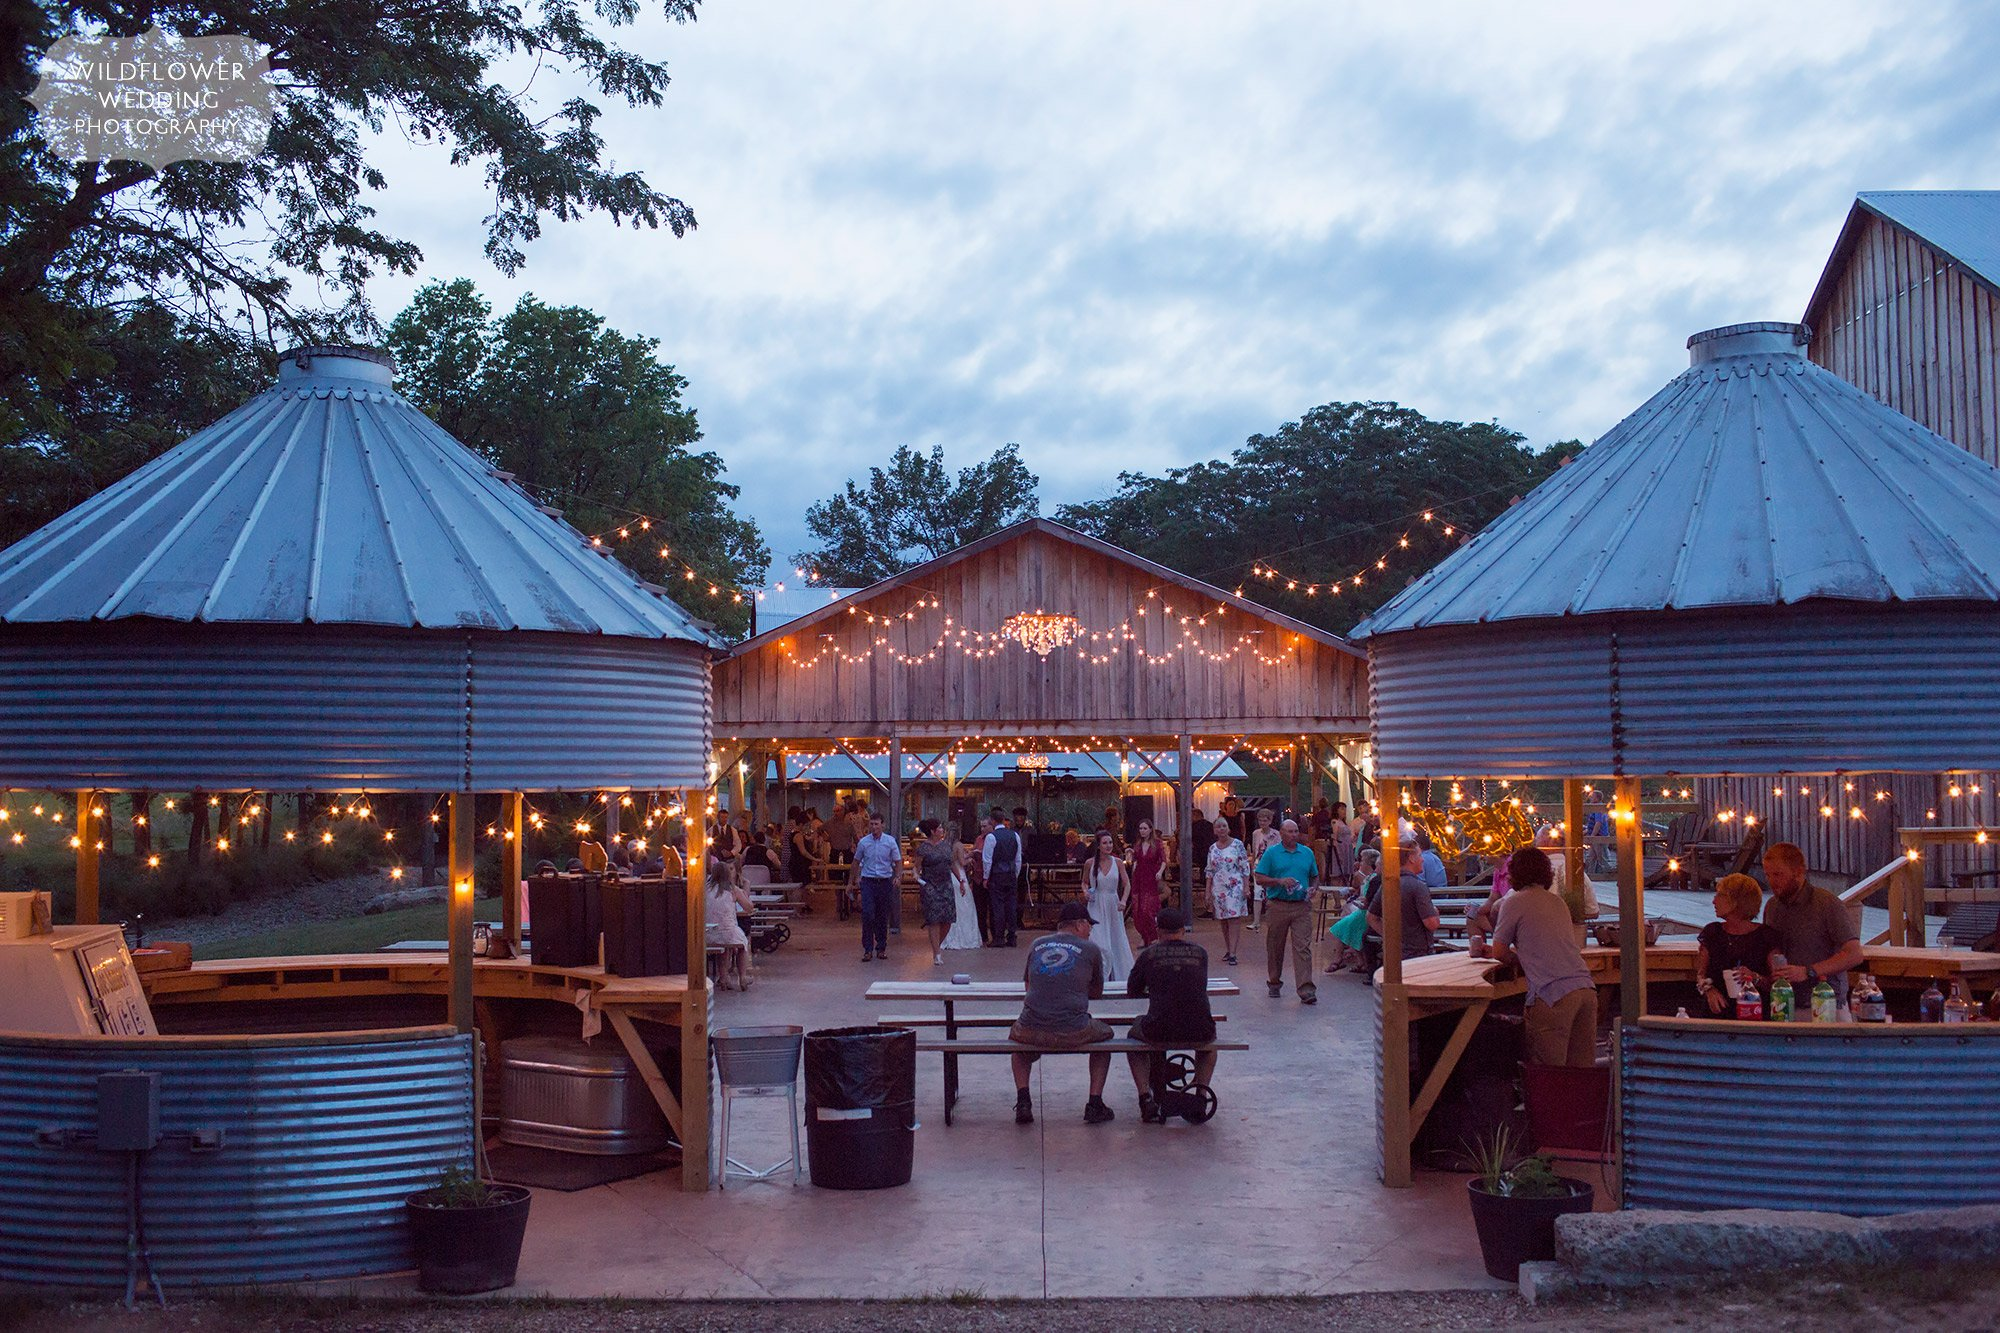 This Kempker's Back 40 Barn wedding in the country had the most beautiful outdoor dancing patio with string lights above and silos as outdoor bars for drinks.